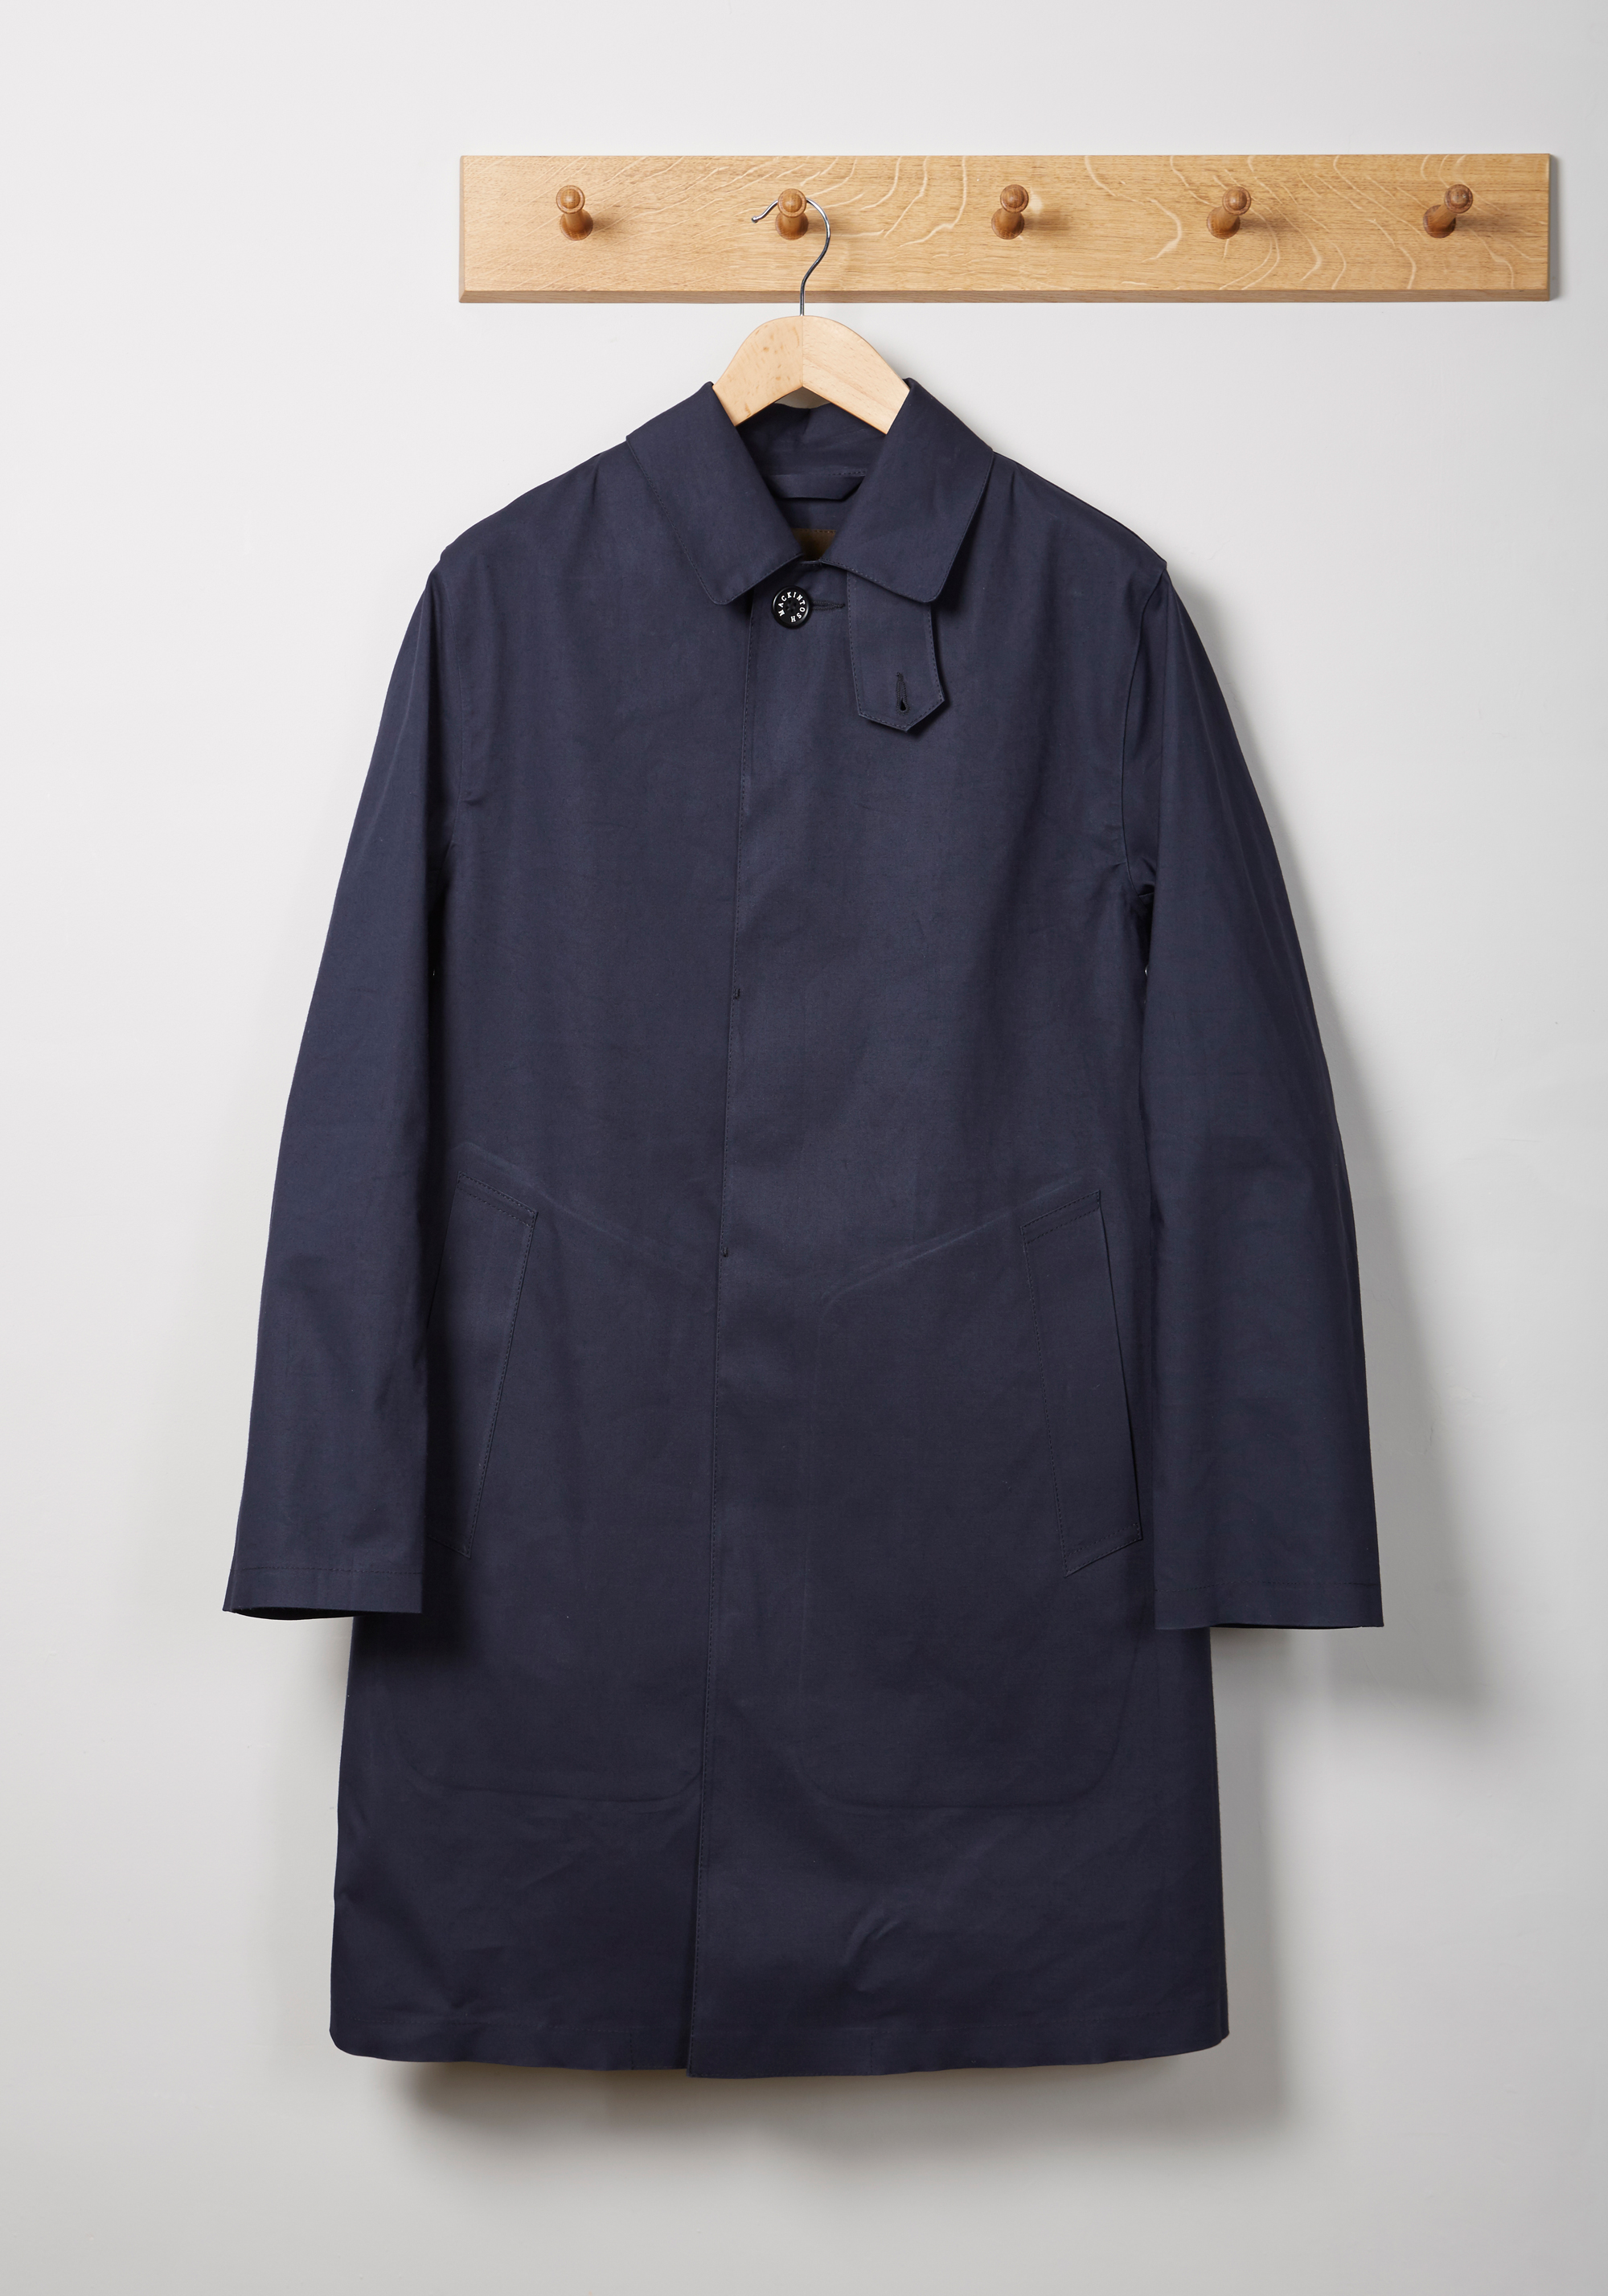 Mackintosh Dunoon Raincoat, Lissom & Muster, £790